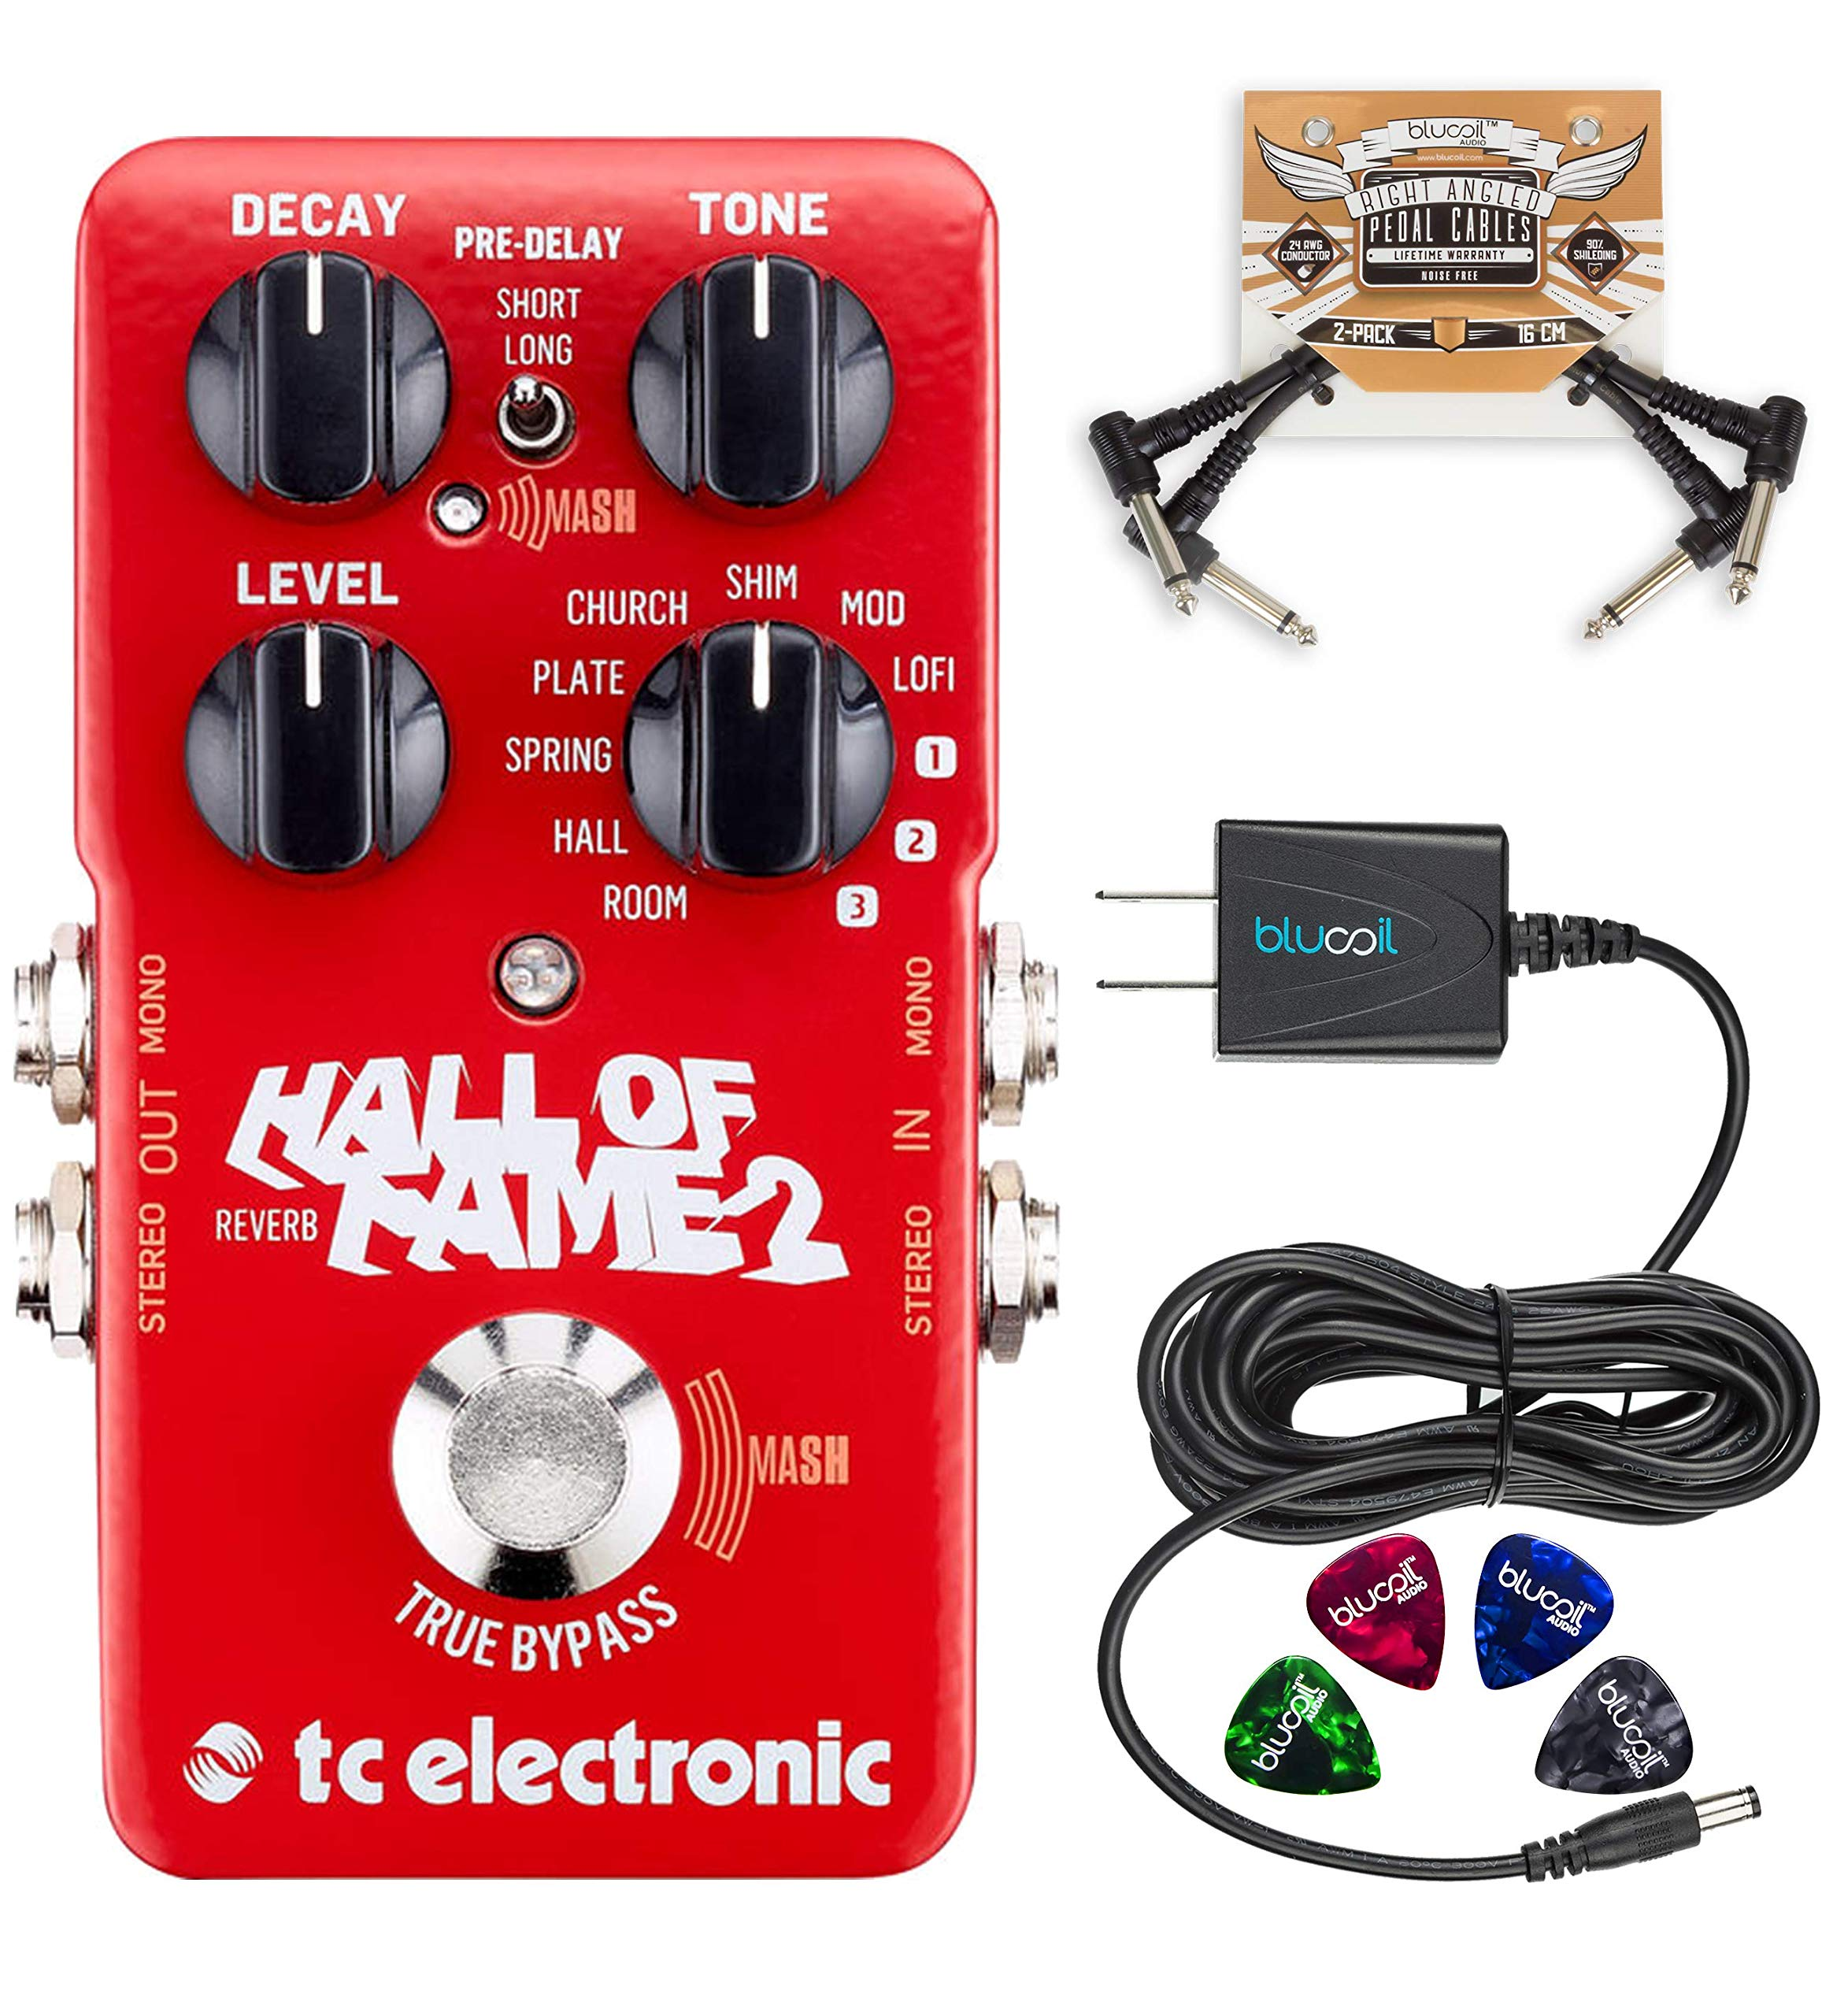 TC Electronic Hall of Fame 2 Reverb Pedal with TonePrint Bundle with Blucoil Power Supply Slim AC/DC Adapter for 9 Volt DC 670mA, 2-Pack of Pedal Patch Cables and 4-Pack of Celluloid Guitar Picks by blucoil